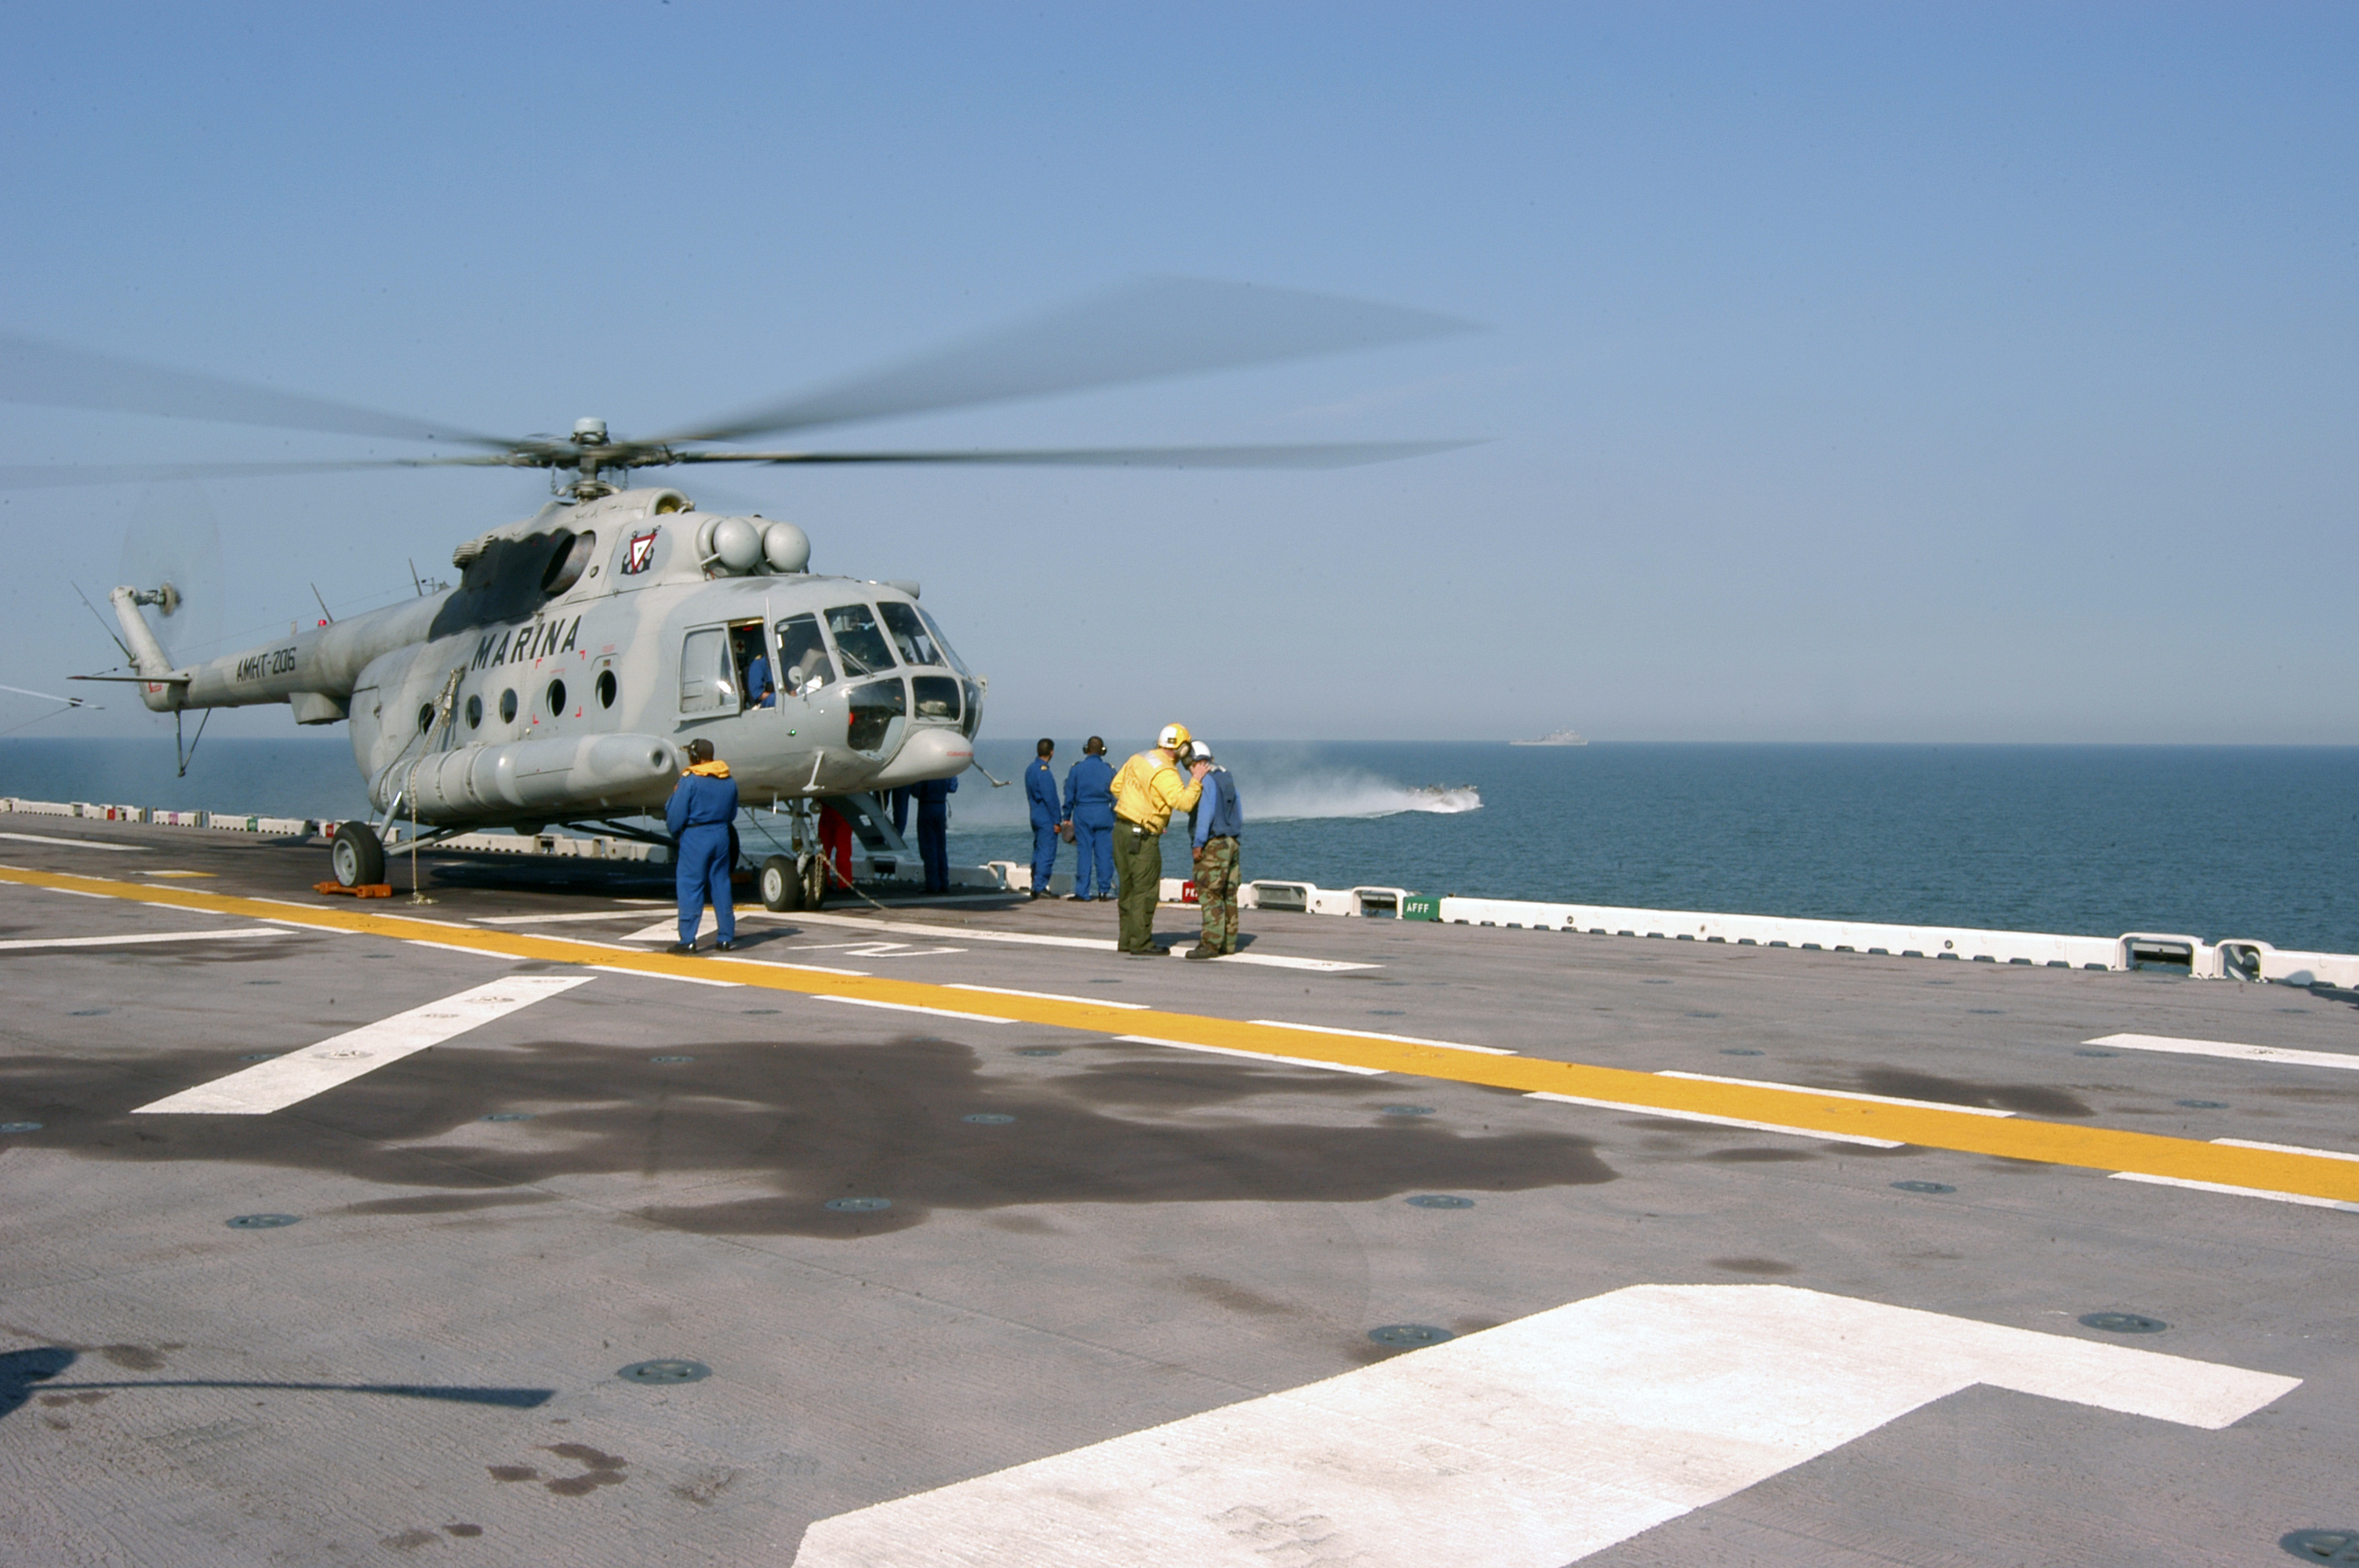 mi helicopter with File Us Navy 050909 N 8154g 045 A Mexican Navy Mi 8 Helicopter Stands By For Passengers On The Flight Deck Aboard The  Hibious Assault Ship Uss Bataan  Lhd 5   Off The Coast Of Mississippi on Rolls Royce Wraith For Sale 10000245 also View photo besides E Mi 1 further Mil Mi17 Czech Air Force Camouflage together with Open photo.